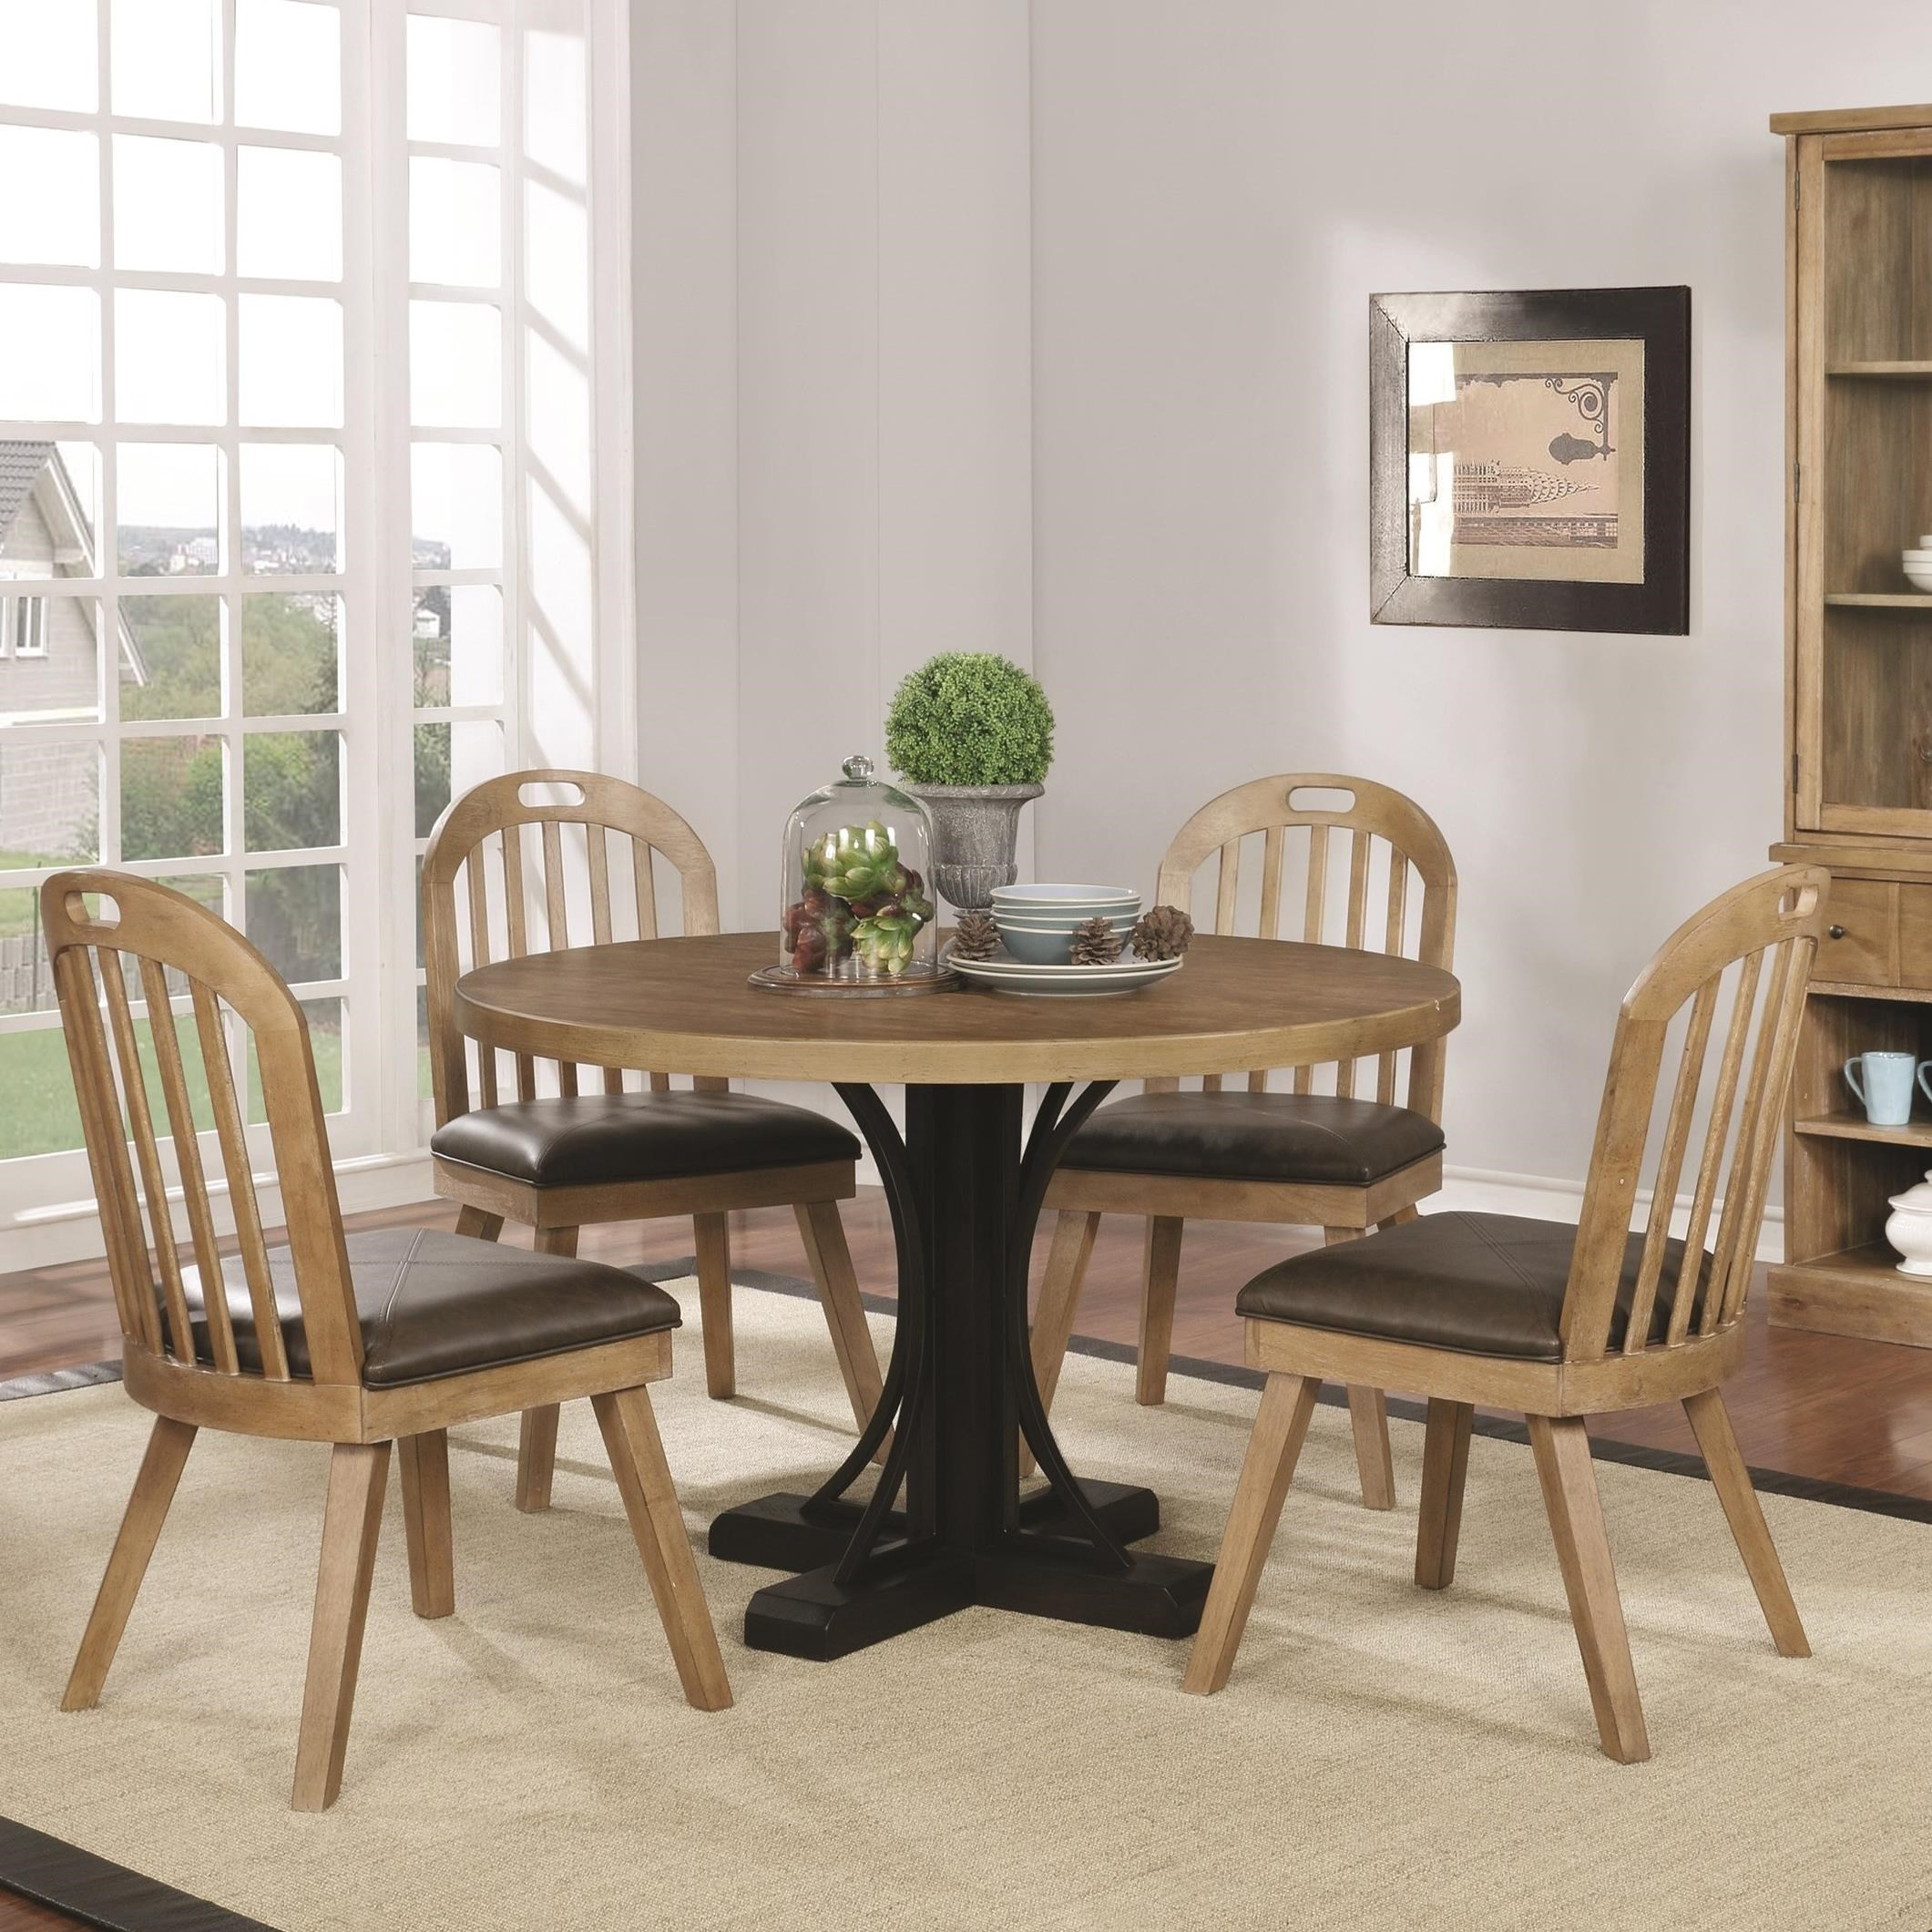 Dining Room Sets Dallas Tx: Coaster Bishop 5pc Round Dining Table Set Dallas TX